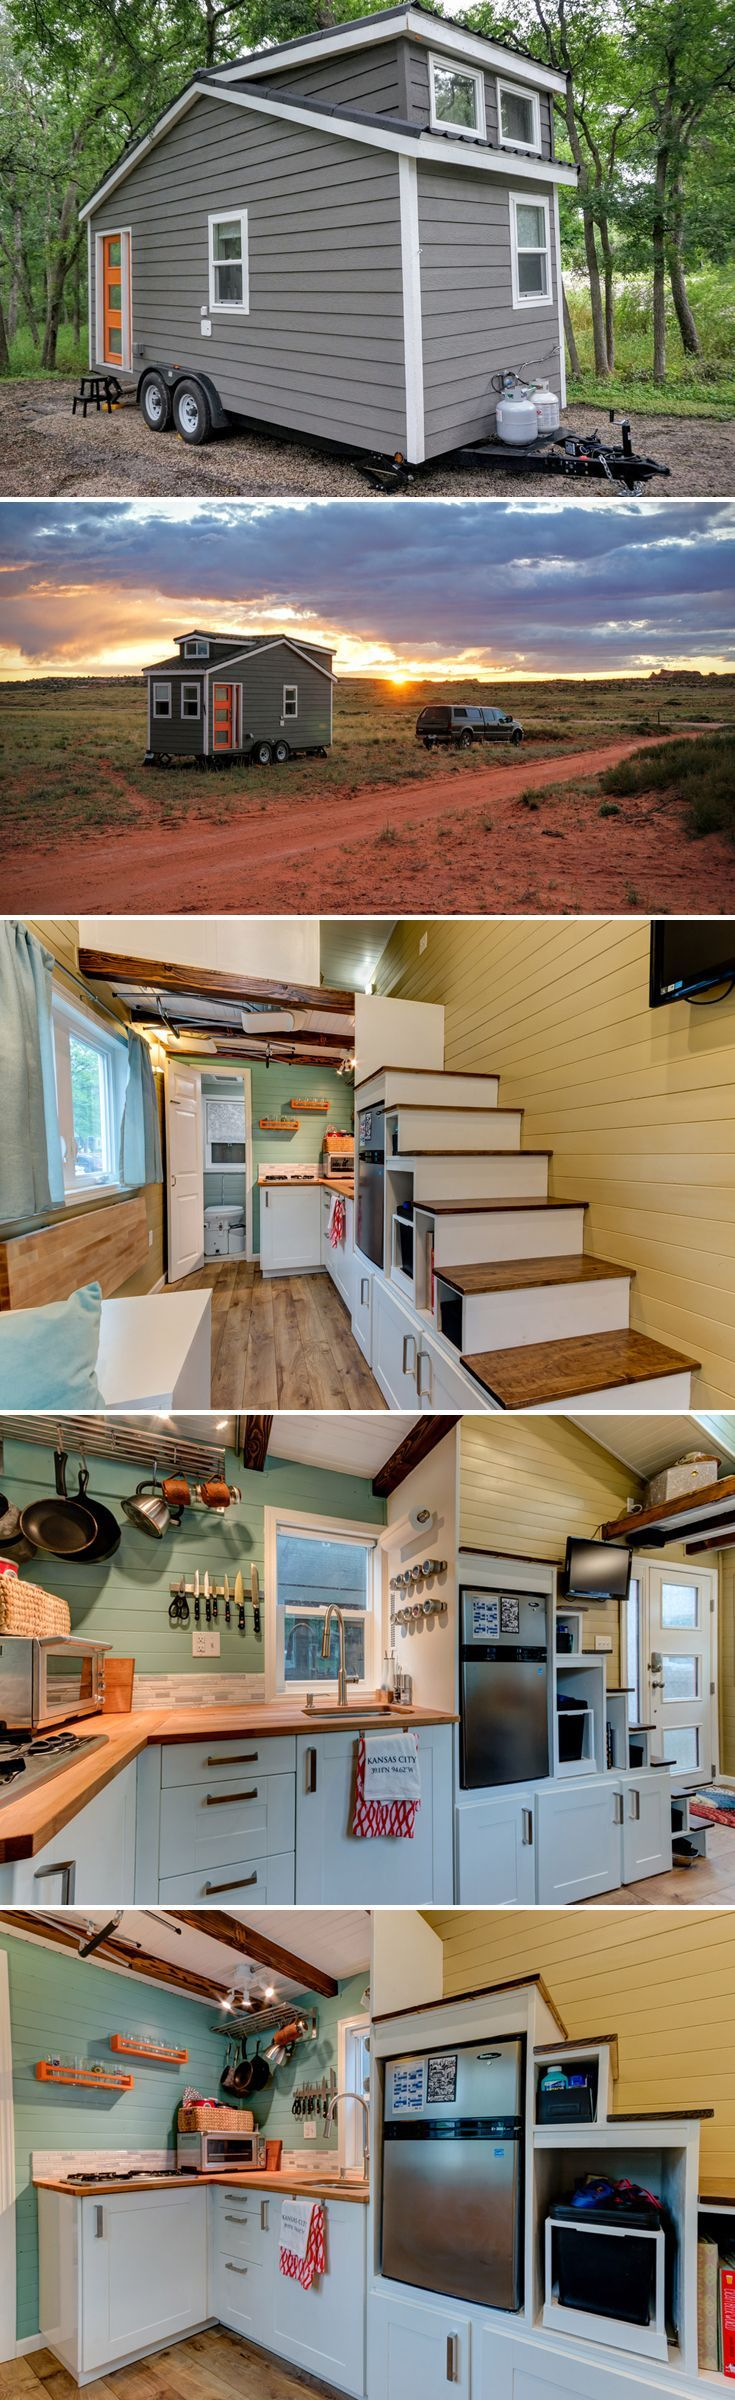 17 Best ideas about Tumbleweed Homes on Pinterest Small